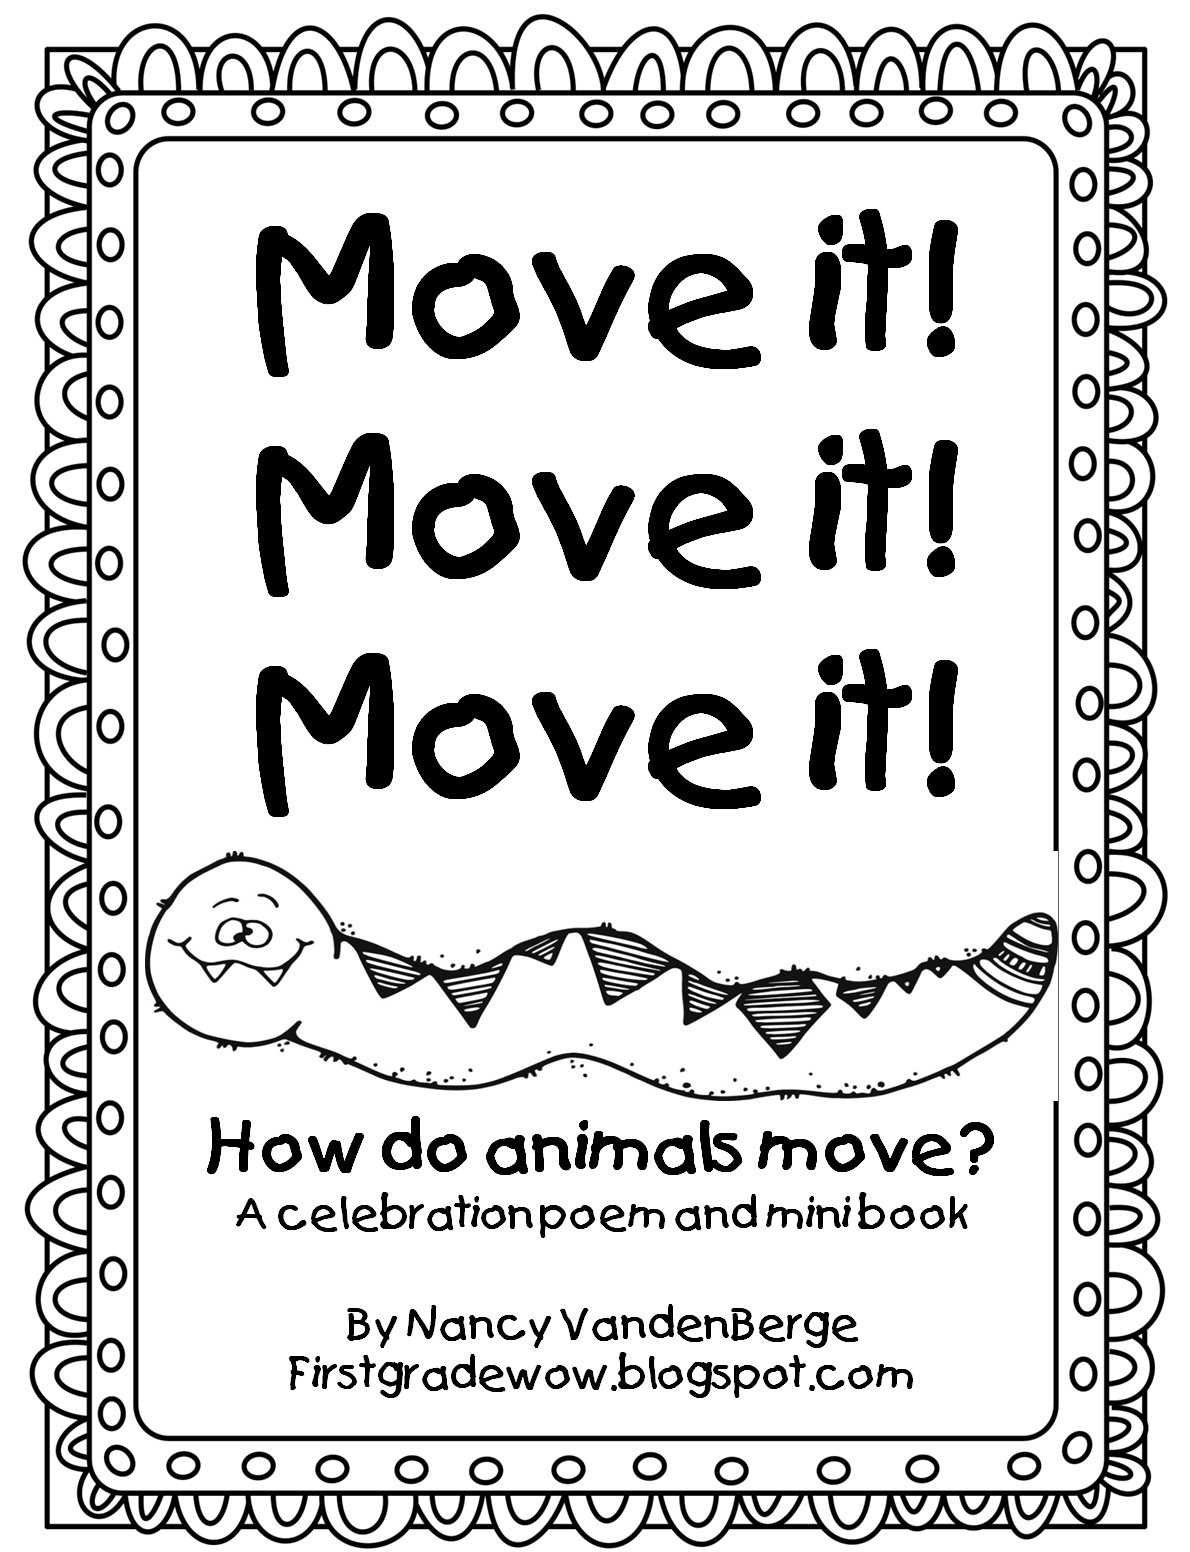 First Grade Wow Move It Move It Move It